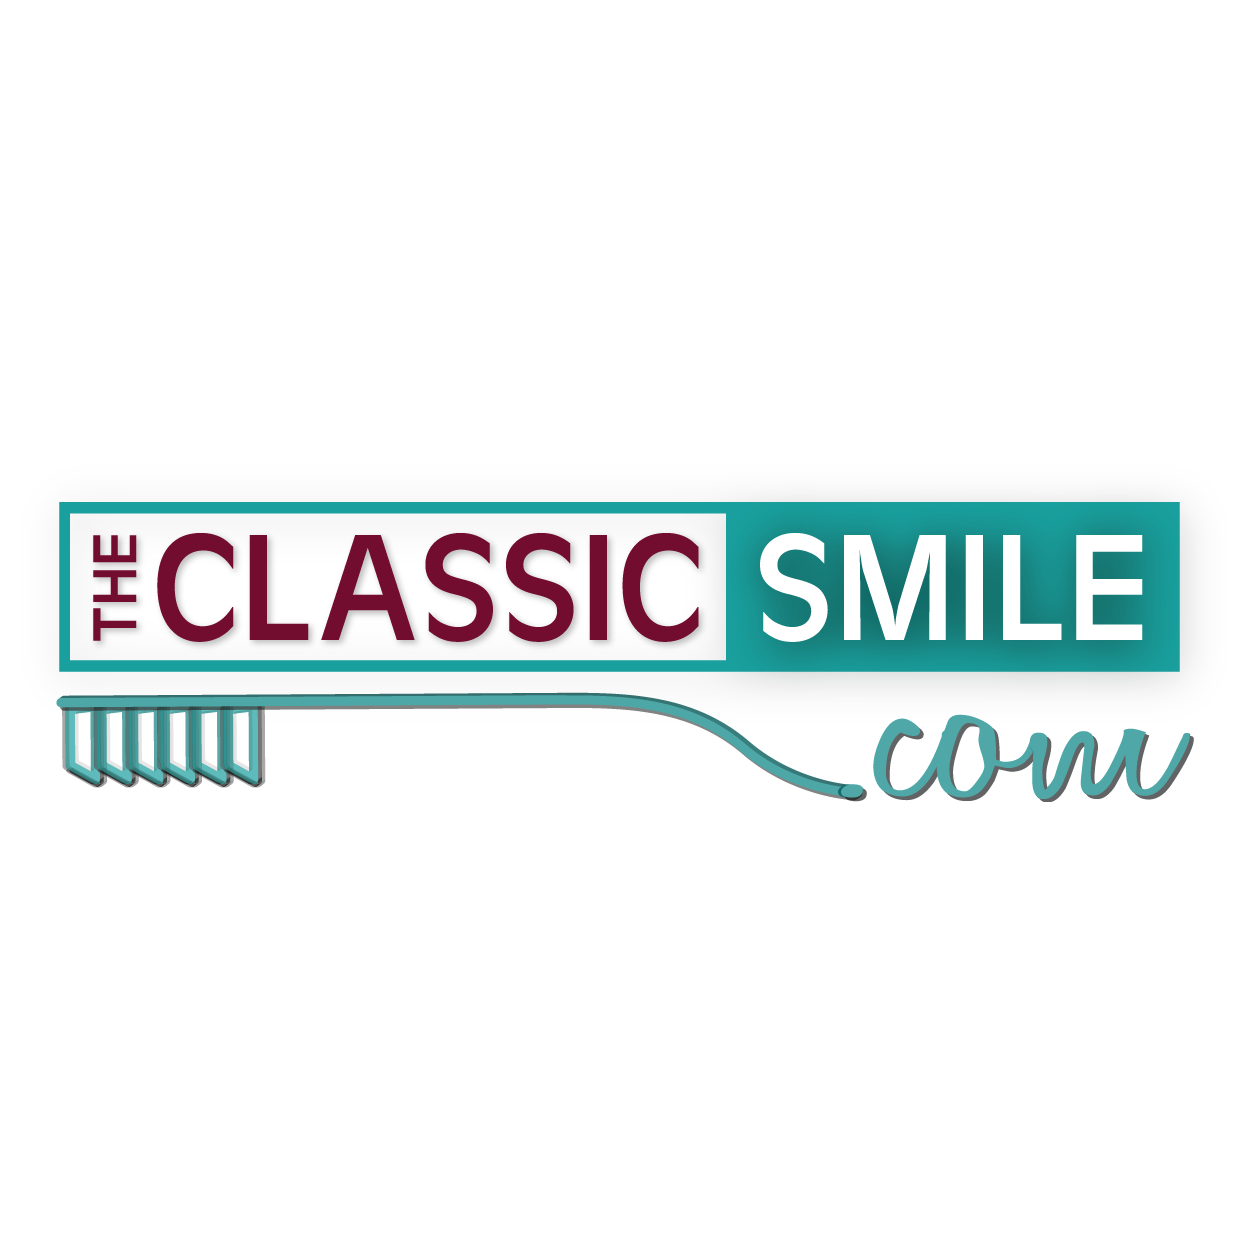 image of the The Classic Smile